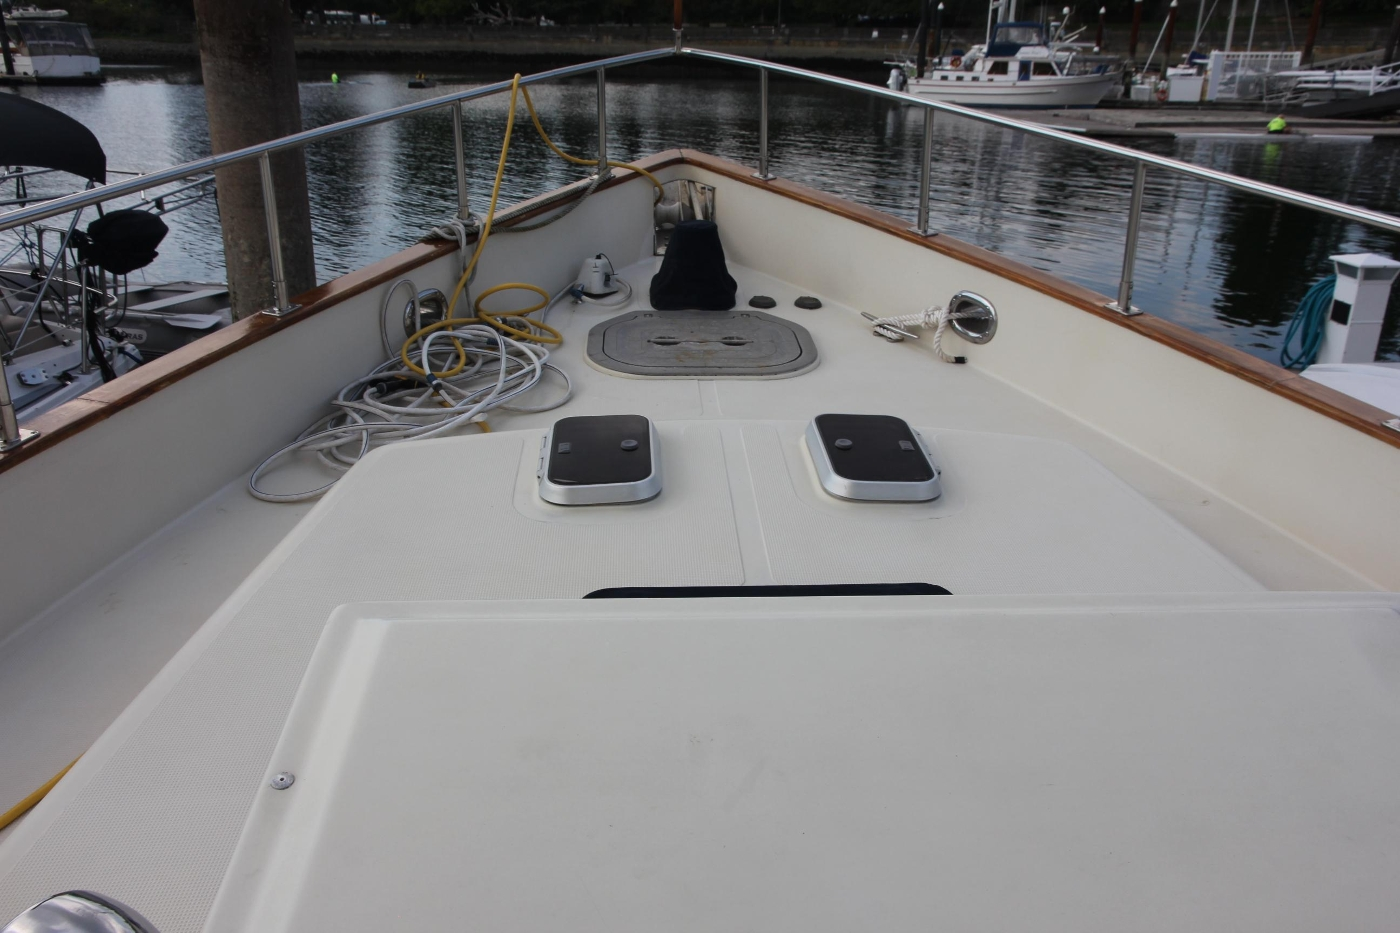 2000 Nordhavn Pilothouse, Foredeck and Anchor